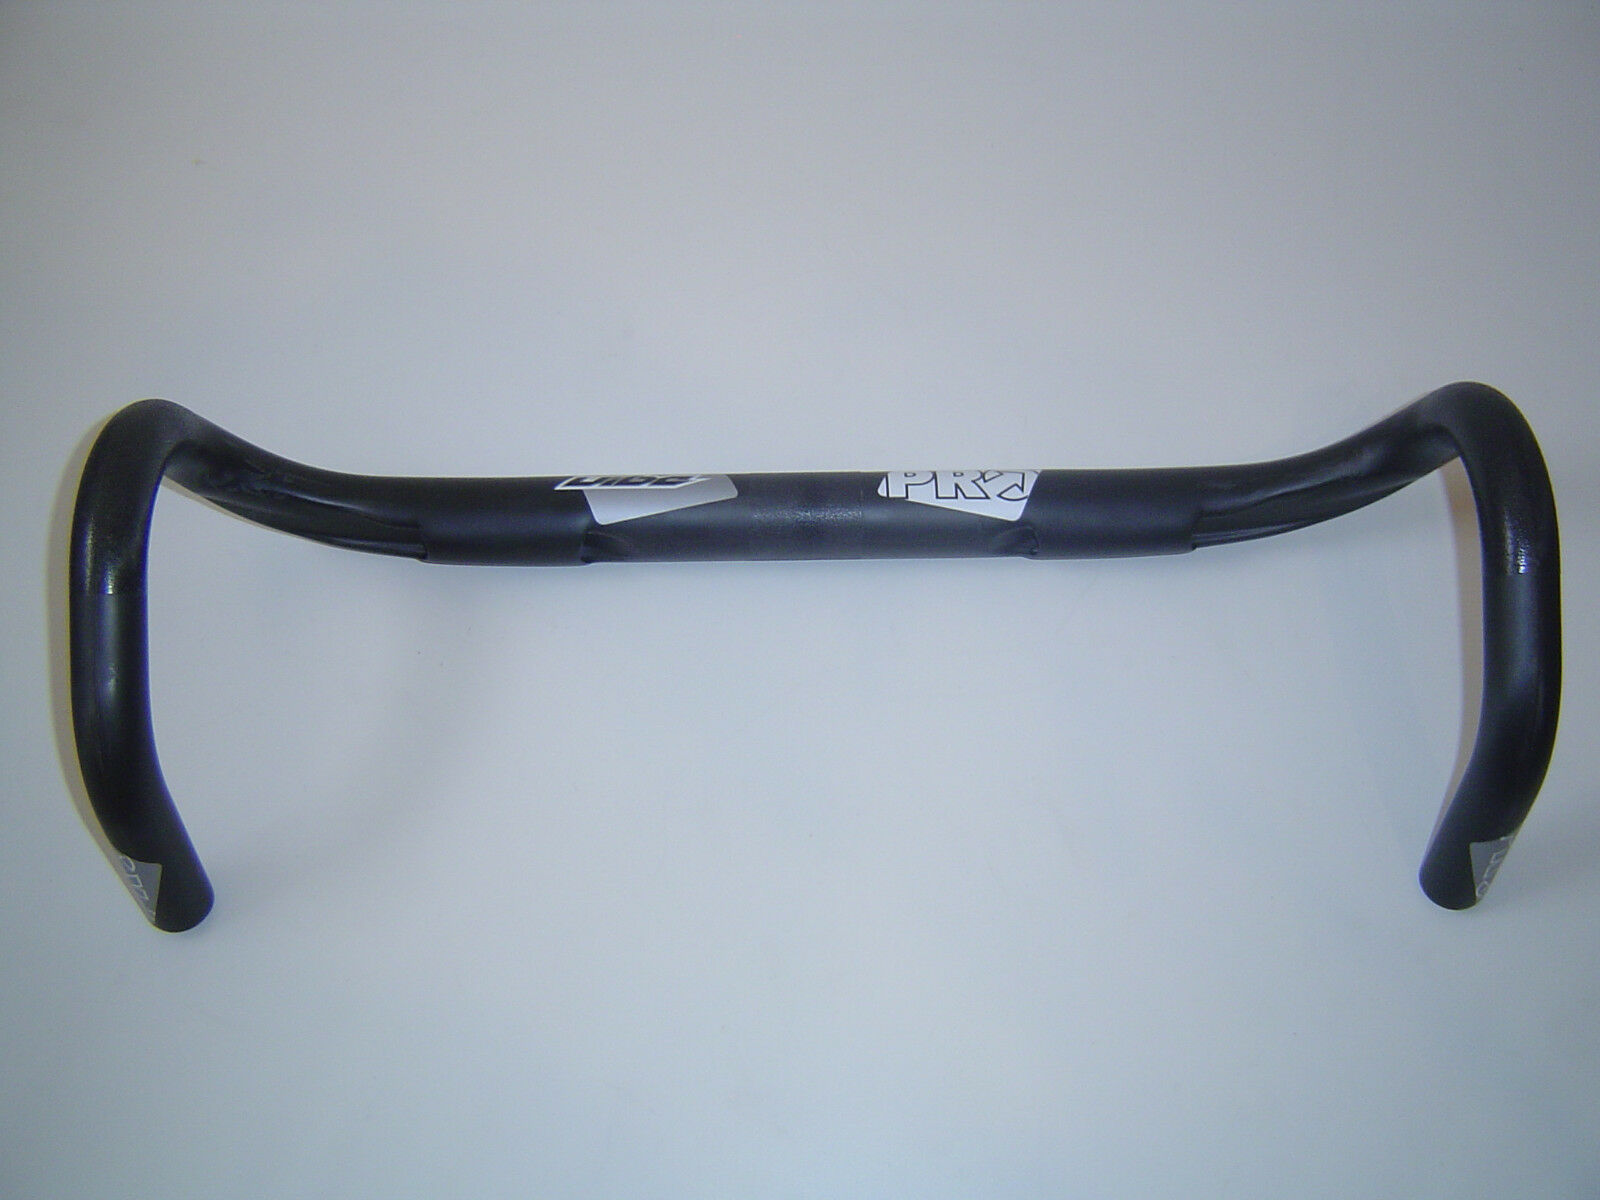 Pro Vibe t800 UD carbon anatomic MANUBRIO 40cm 31,8mm con OVP NUOVO